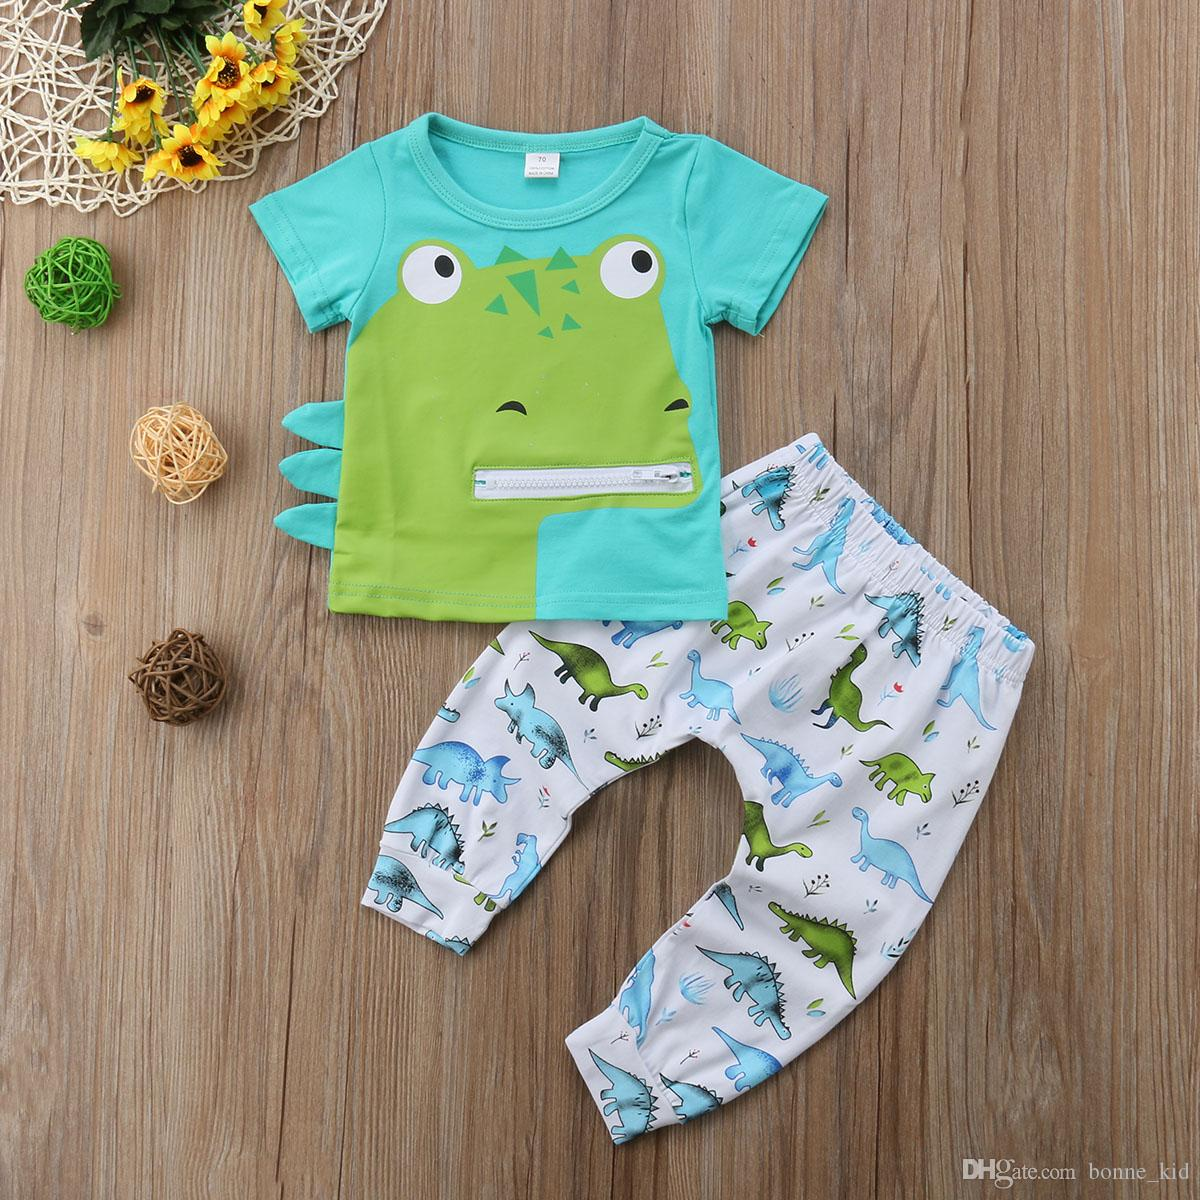 a0c2d7c6981b 2019 Newborn Baby Boys Dinosaur Green T Shirt+Pants Set Outfits Animals  Casual Kids Clothes Costume Infant Baby Boutique 0 24M From Bonne kid